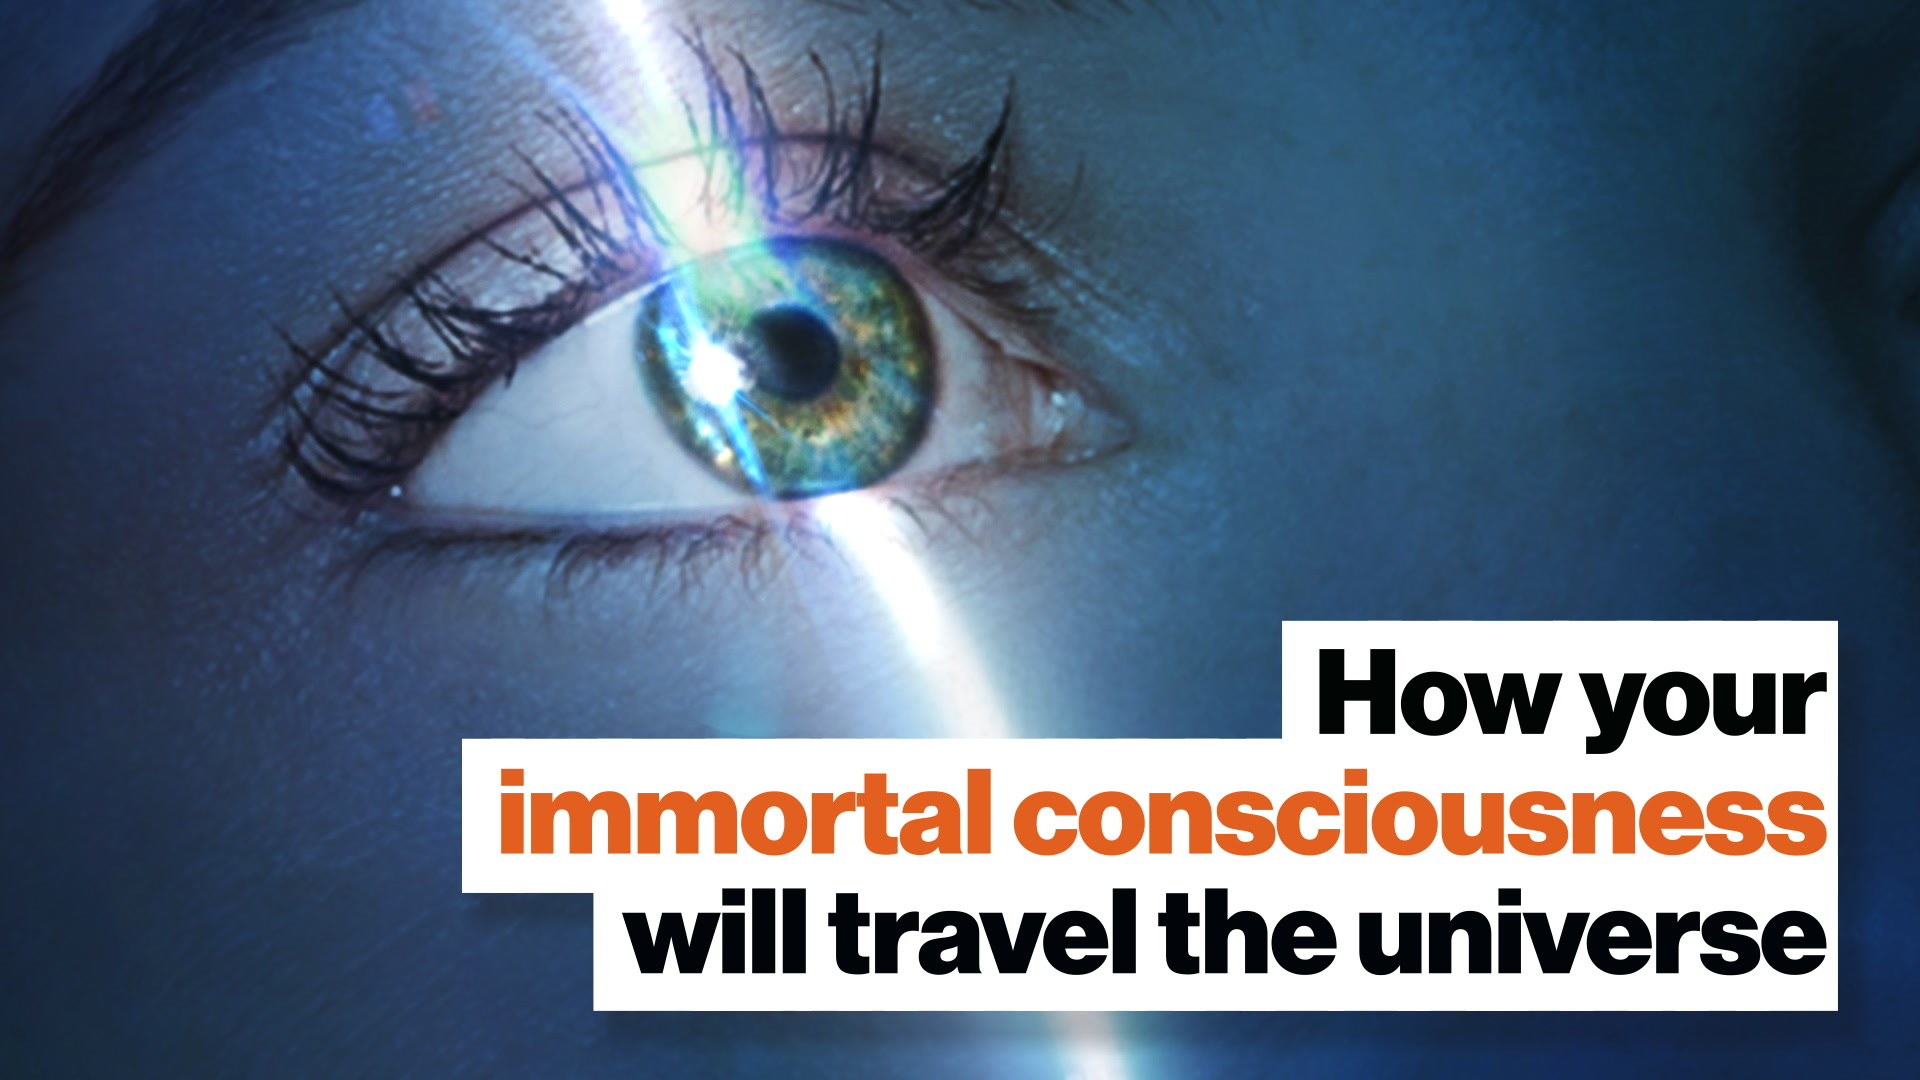 How your immortal consciousness will travel the universe